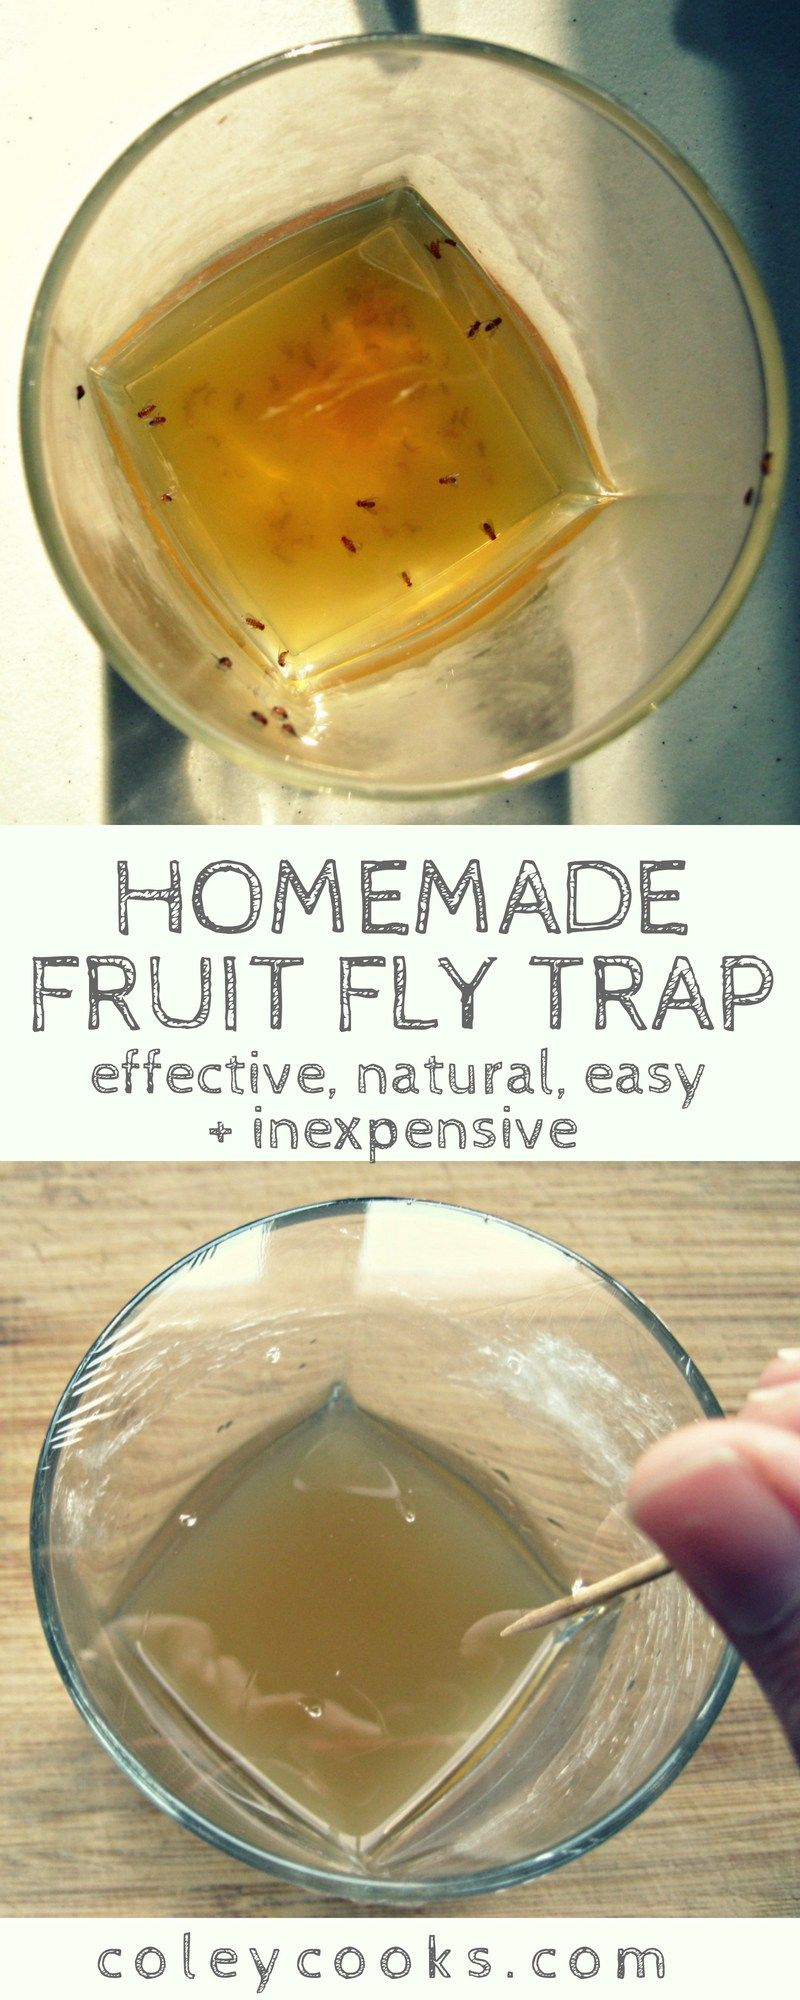 Where Fruit Flies Go To Die Fruit Fly Trap Homemade Fruit Fly Trap Homemade Fly Traps